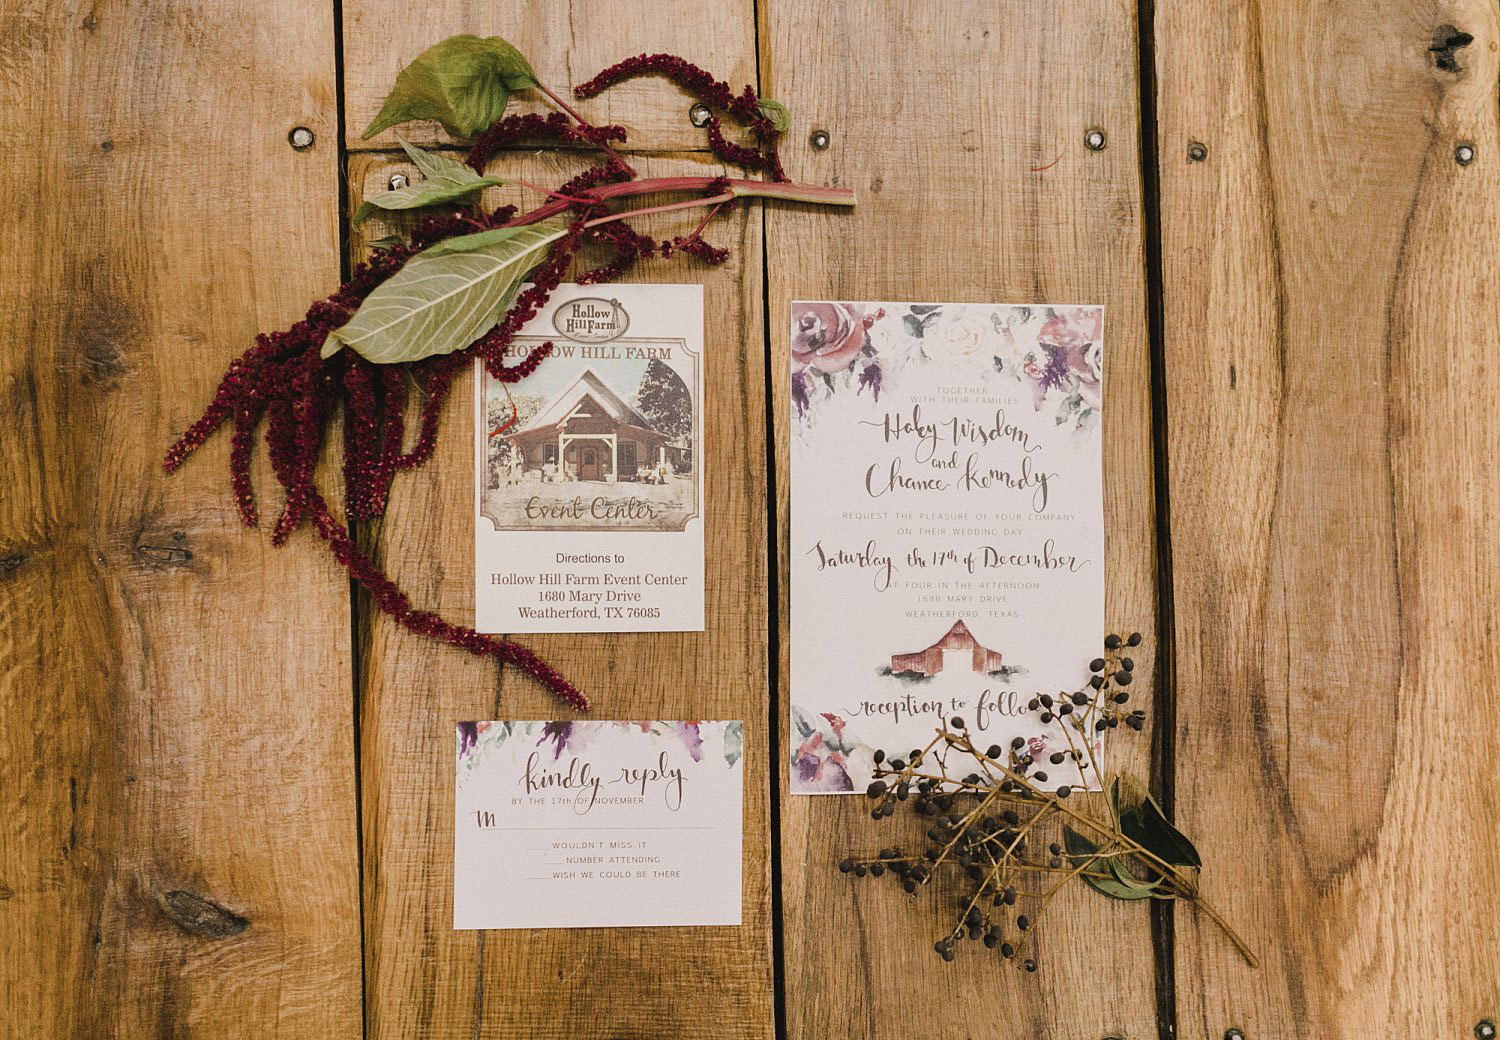 Hollow Hill Farm Event Center Wedding floral invitation with modern text